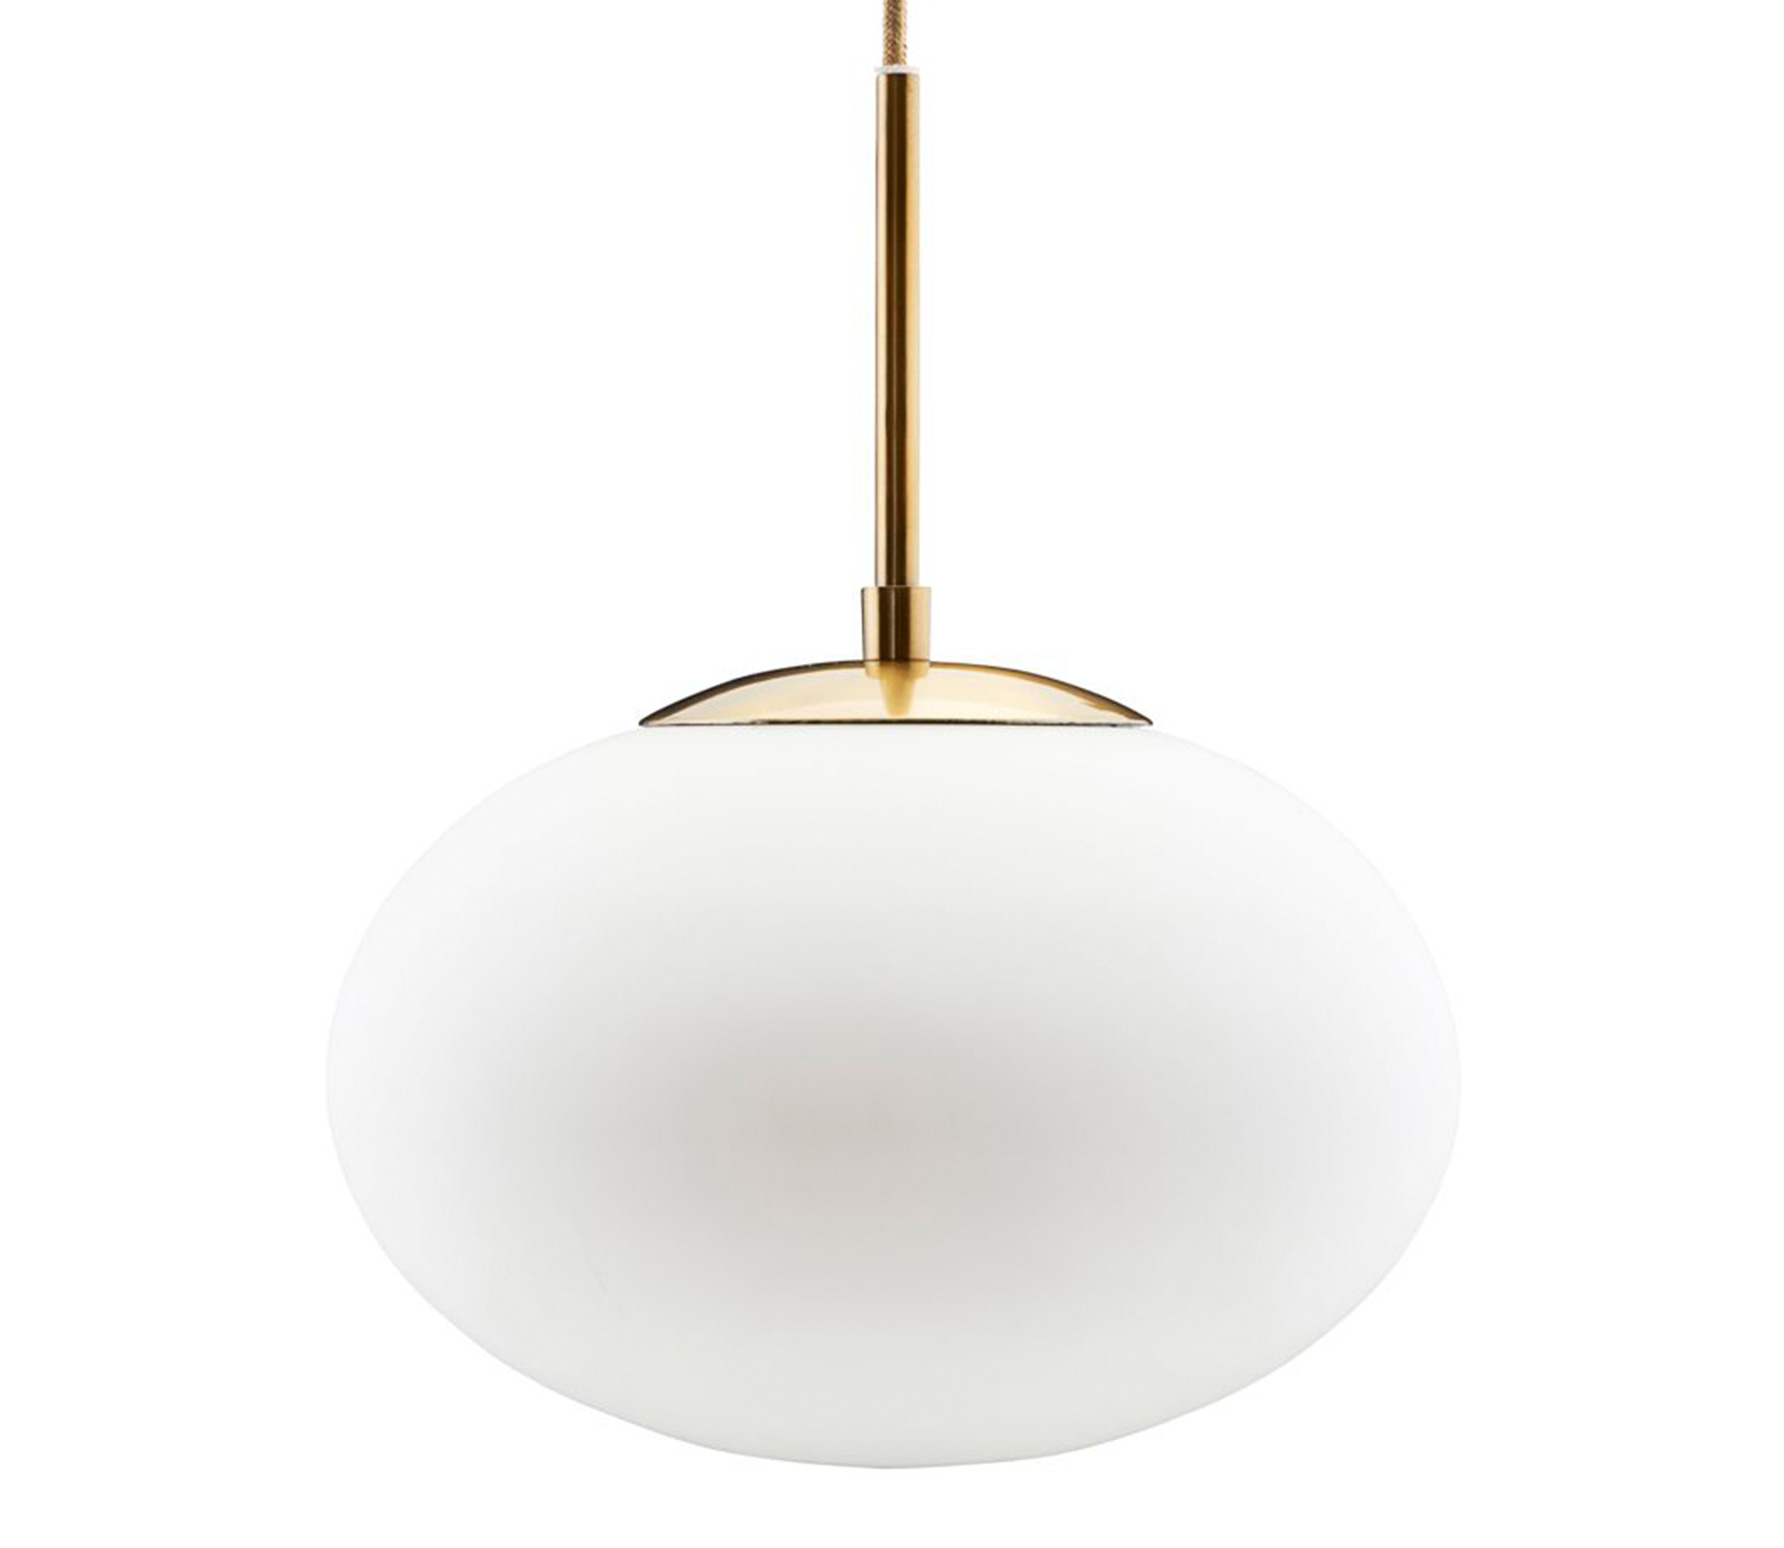 Housedoctor Opal hanglamp wit brass 30 cm wit/brass